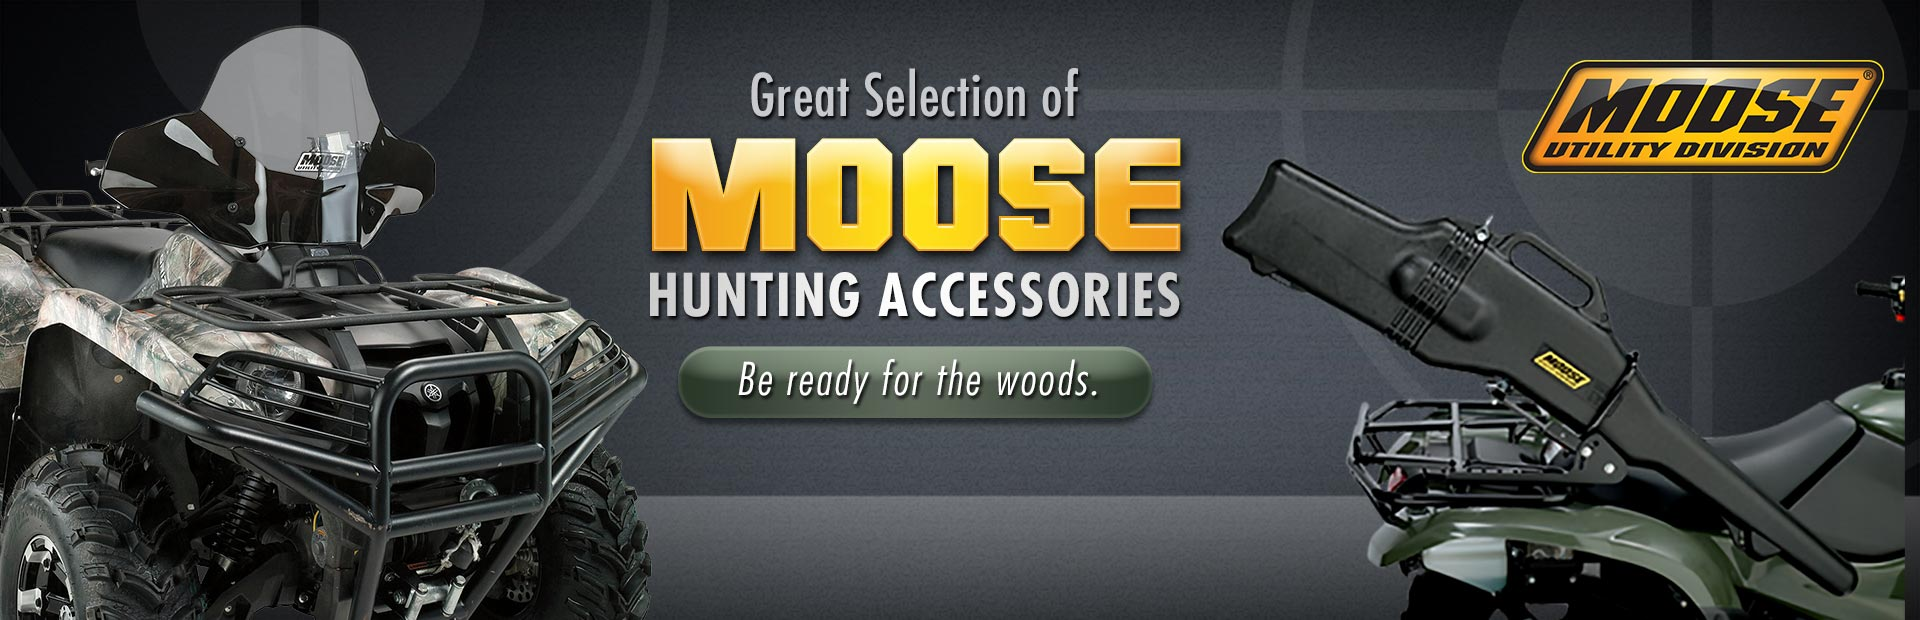 Moose Hunting Accessories: Click here to shop online.